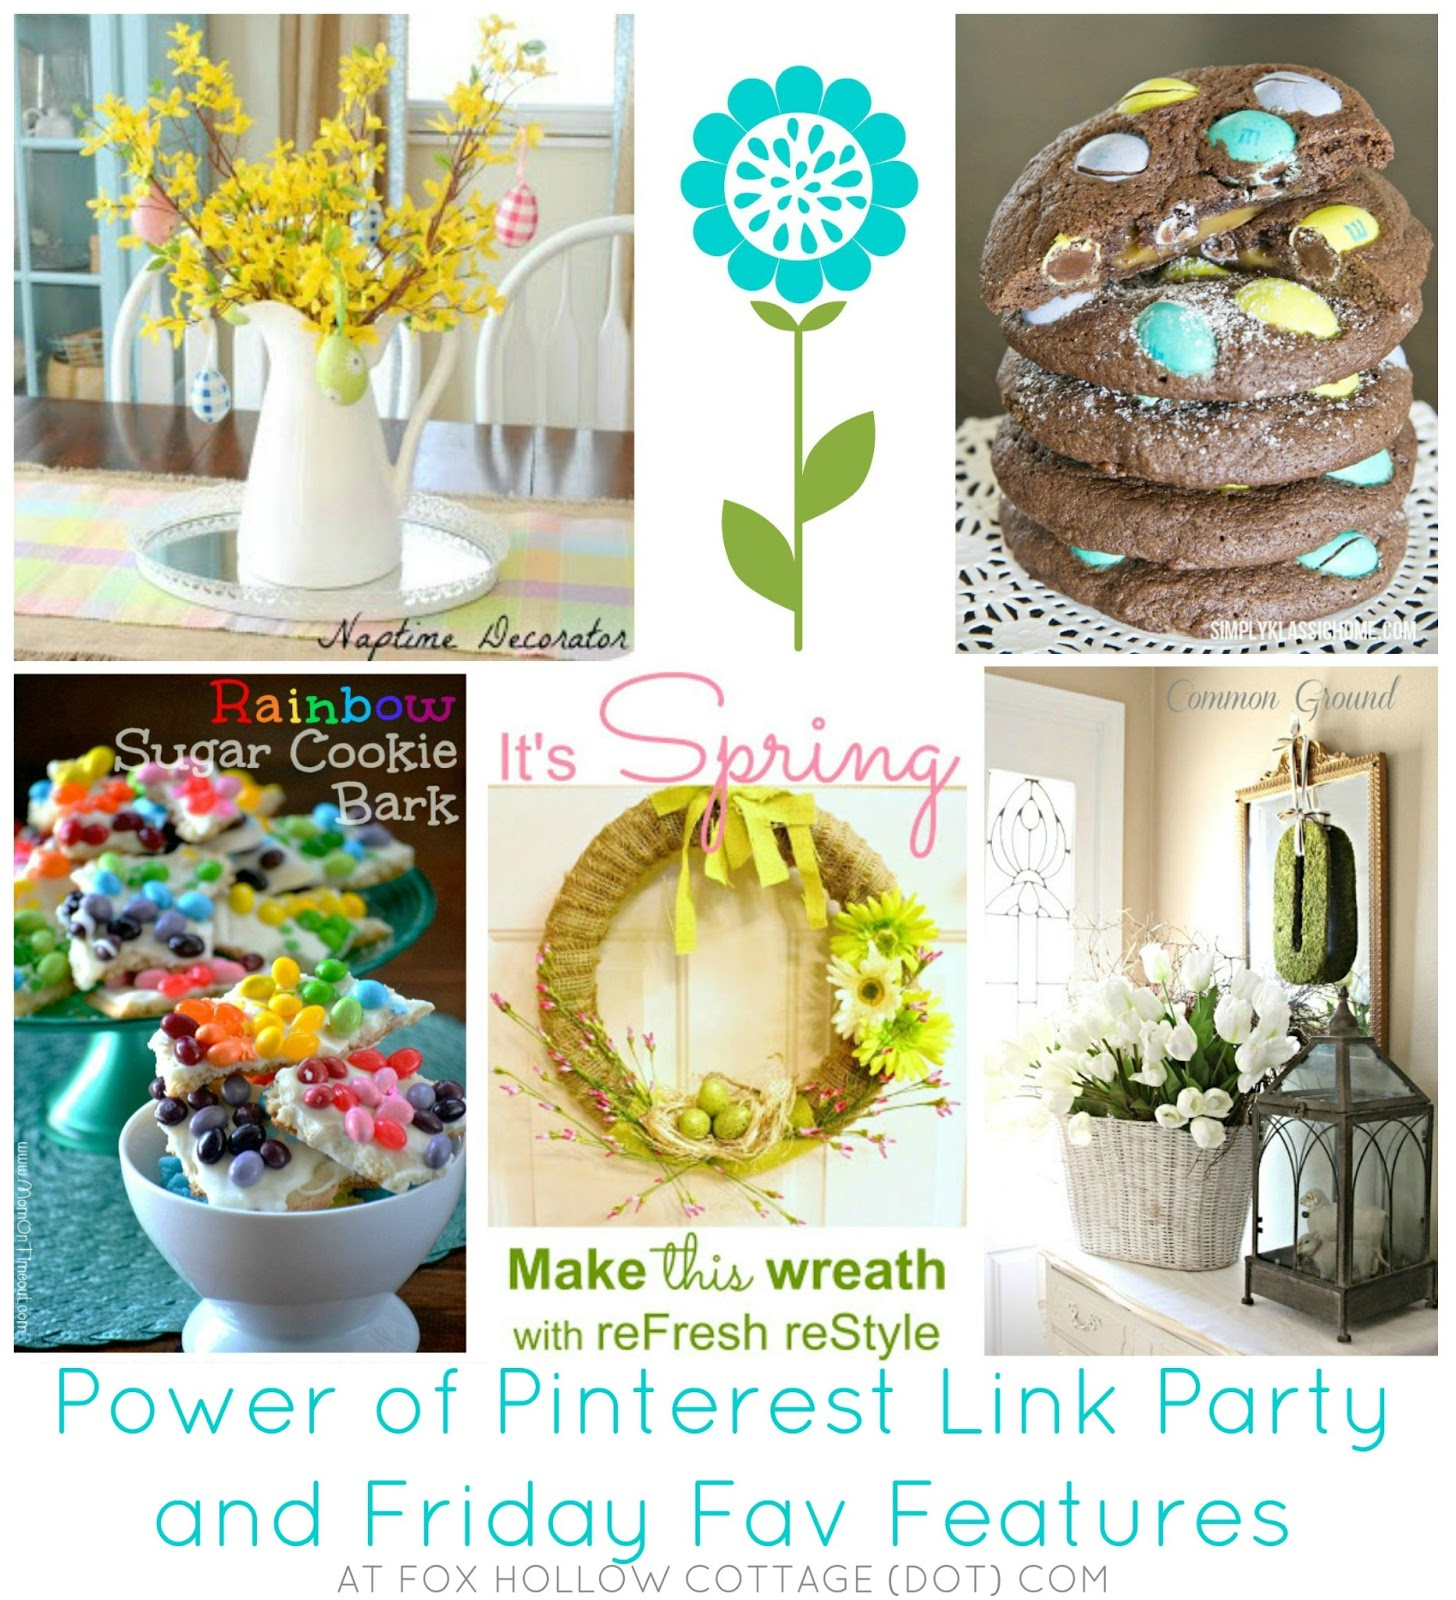 Pinterest Home Decorating Ideas: Power Of Pinterest Link Party (and Friday Fav Features